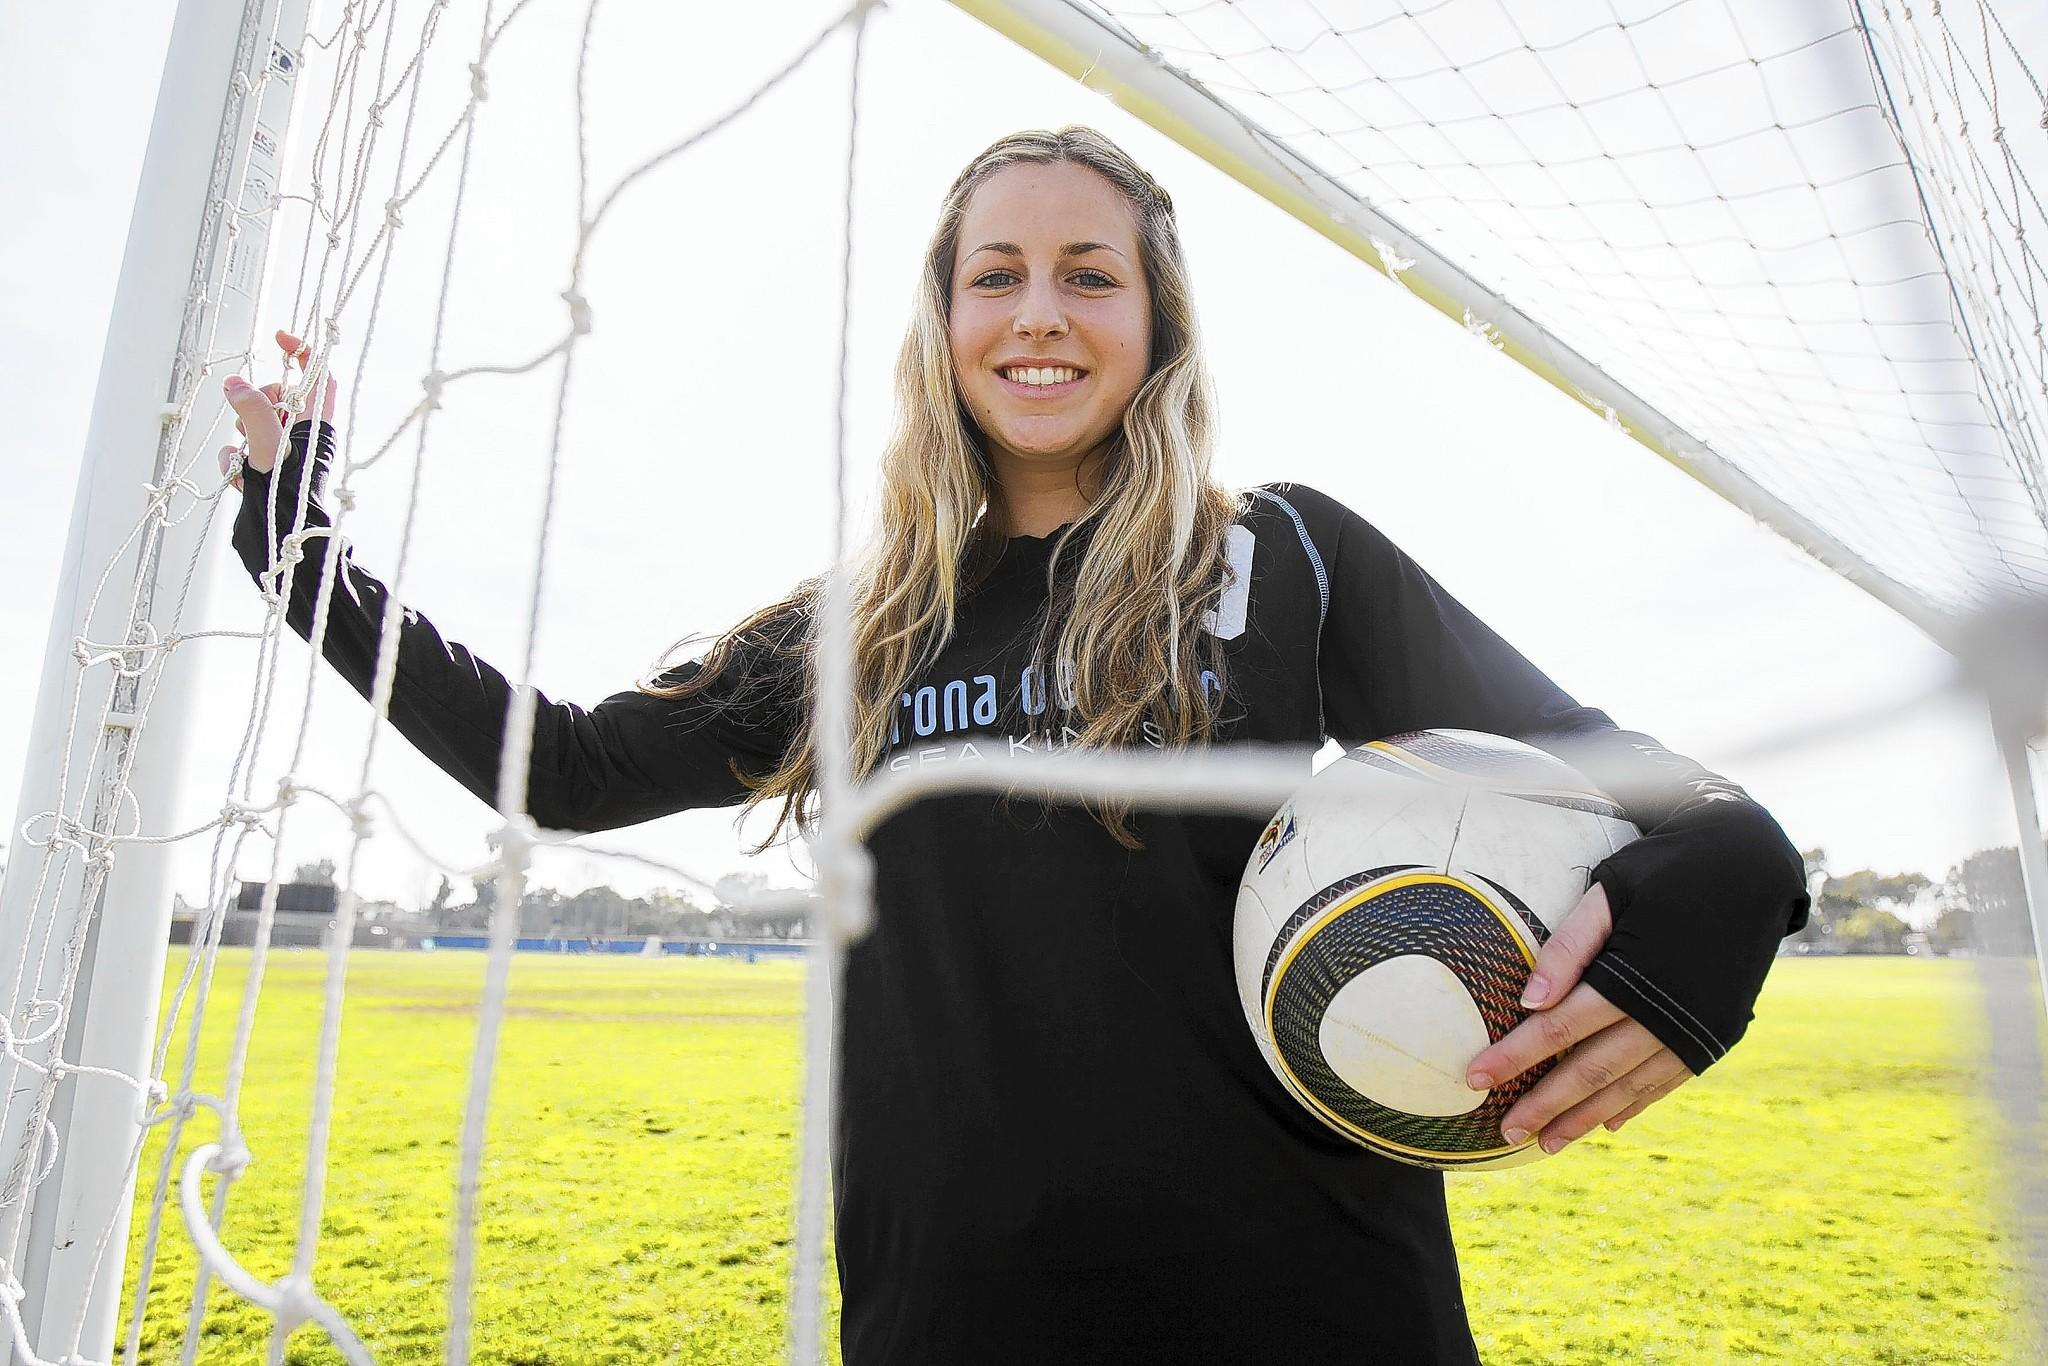 Corona del Mar High's Shelby Brown is the 2013-14 Daily Pilot Newport-Mesa Player of the Year for girls' soccer.